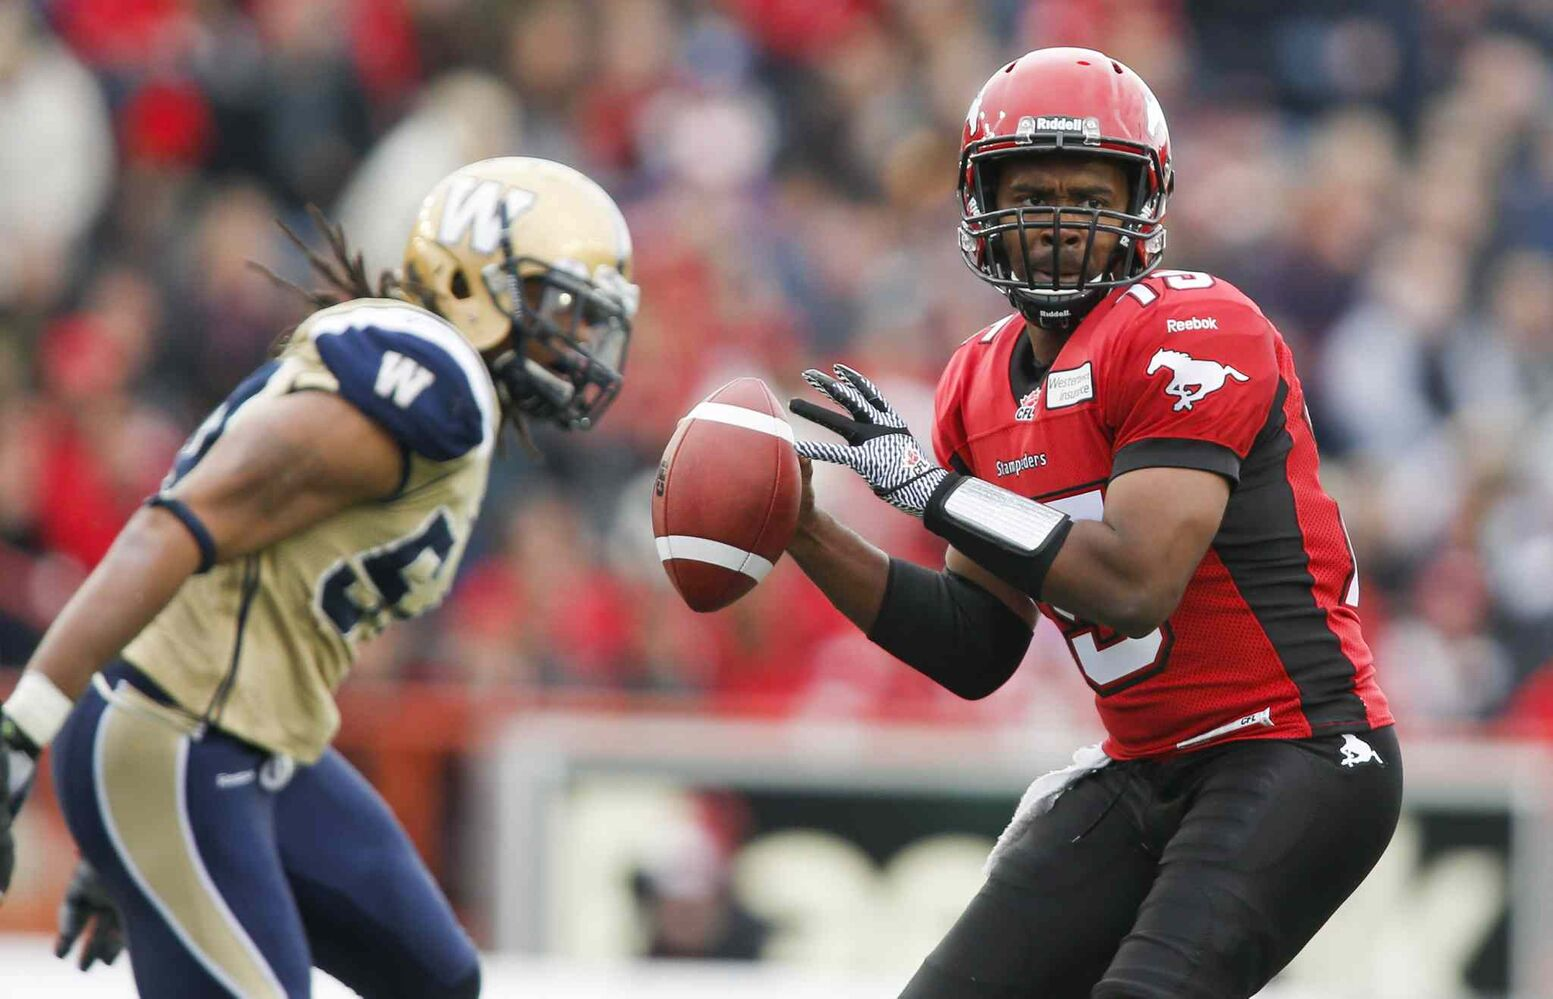 Winnipeg Blue Bombers' Kenny Mainor closes in on Calgary Stampeders' quarterback Kevin Glenn during the first half. (Jeff McIntosh / The Canadian Press)